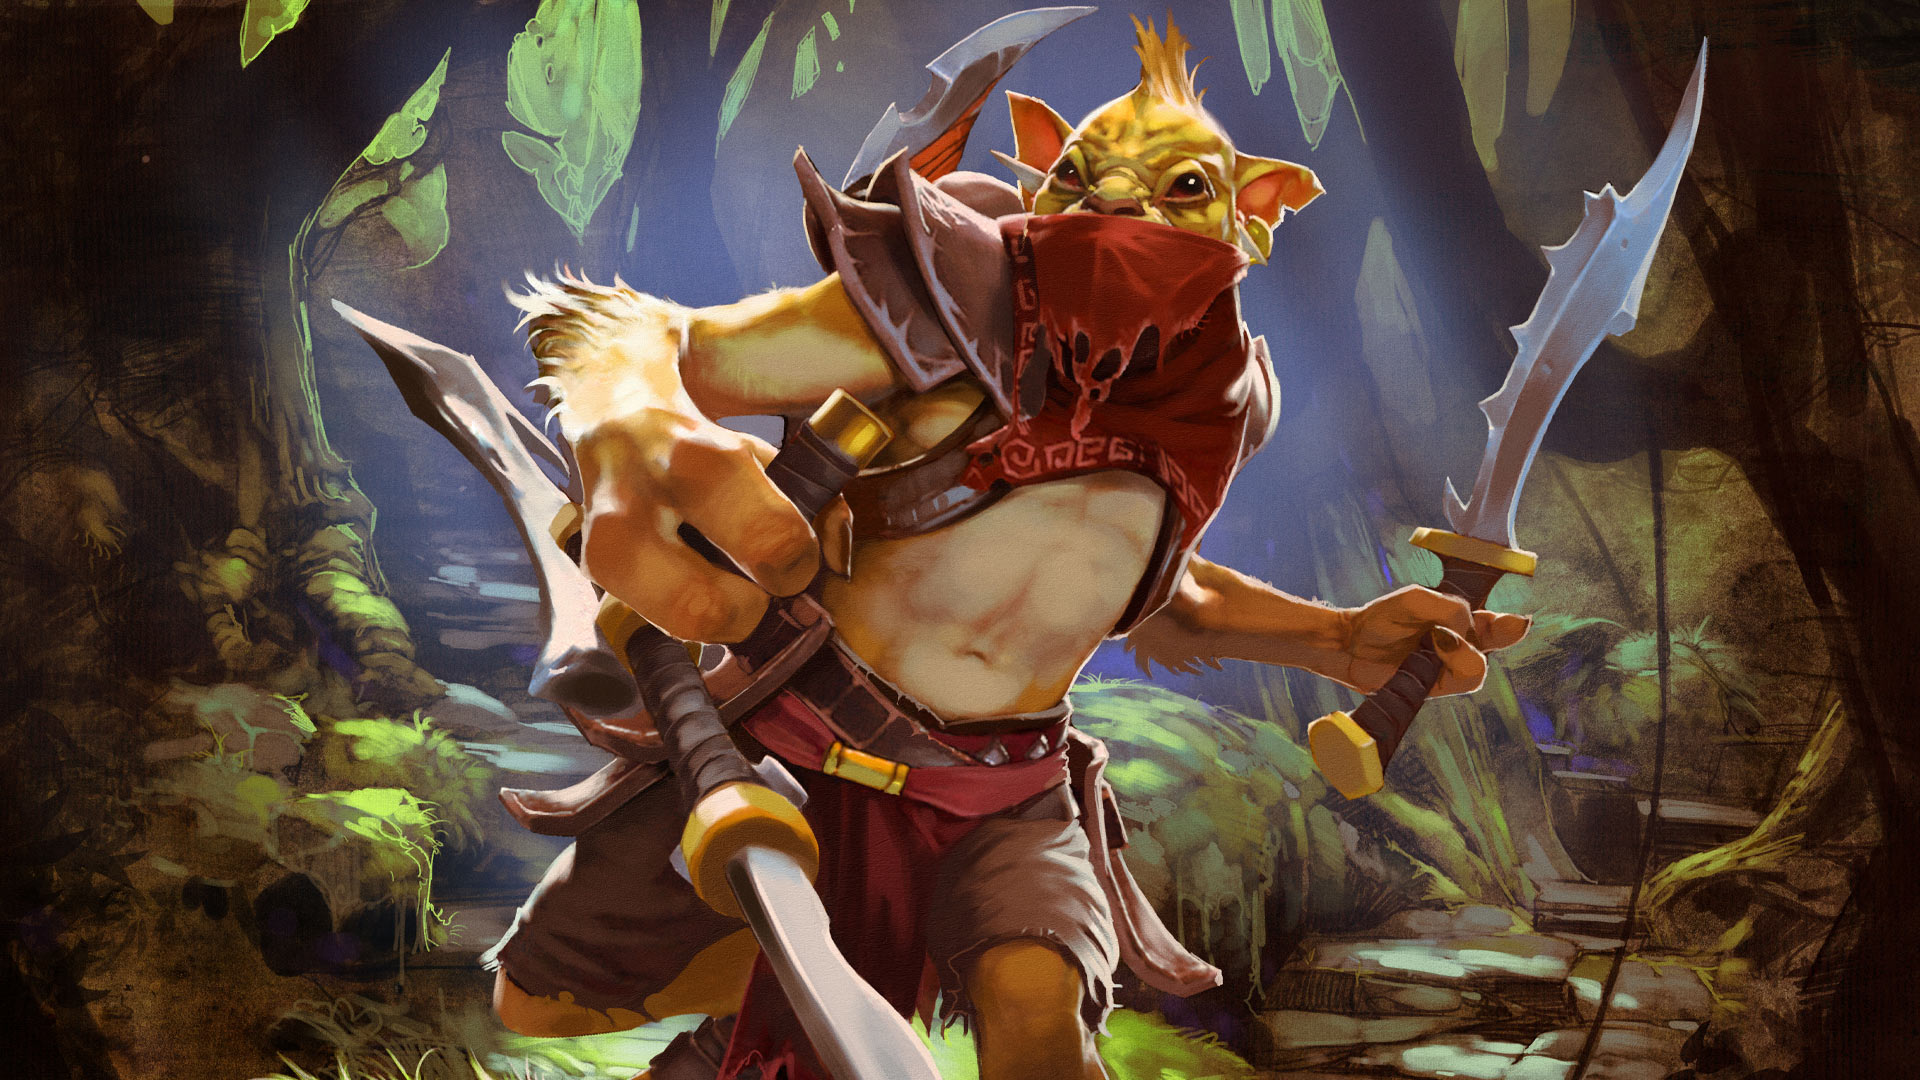 image dota 2 artwork 1 jpg steam trading cards wiki fandom